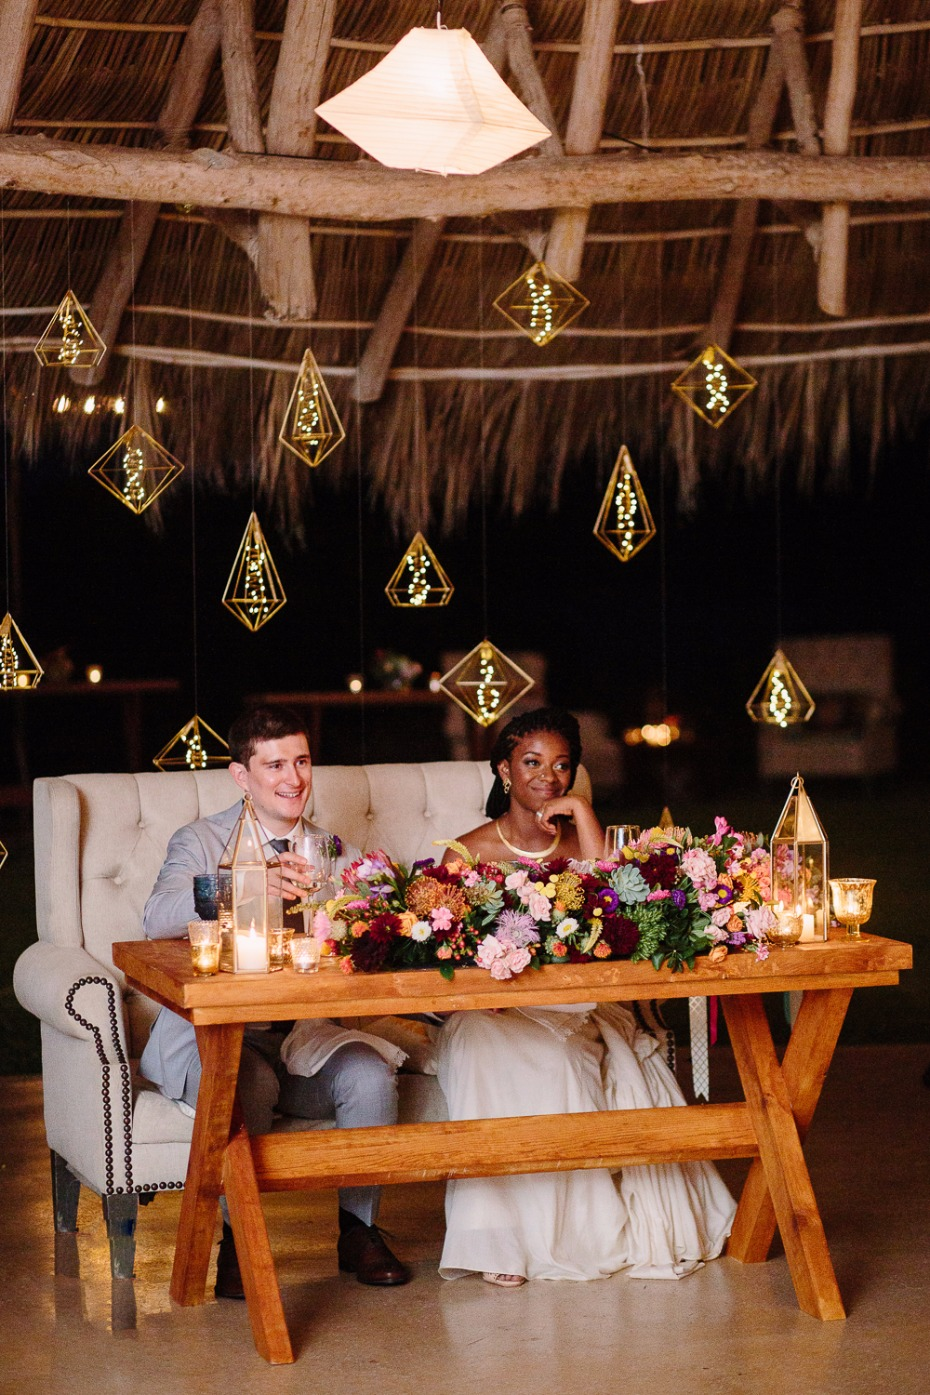 Love the hanging lights behind the sweetheart table